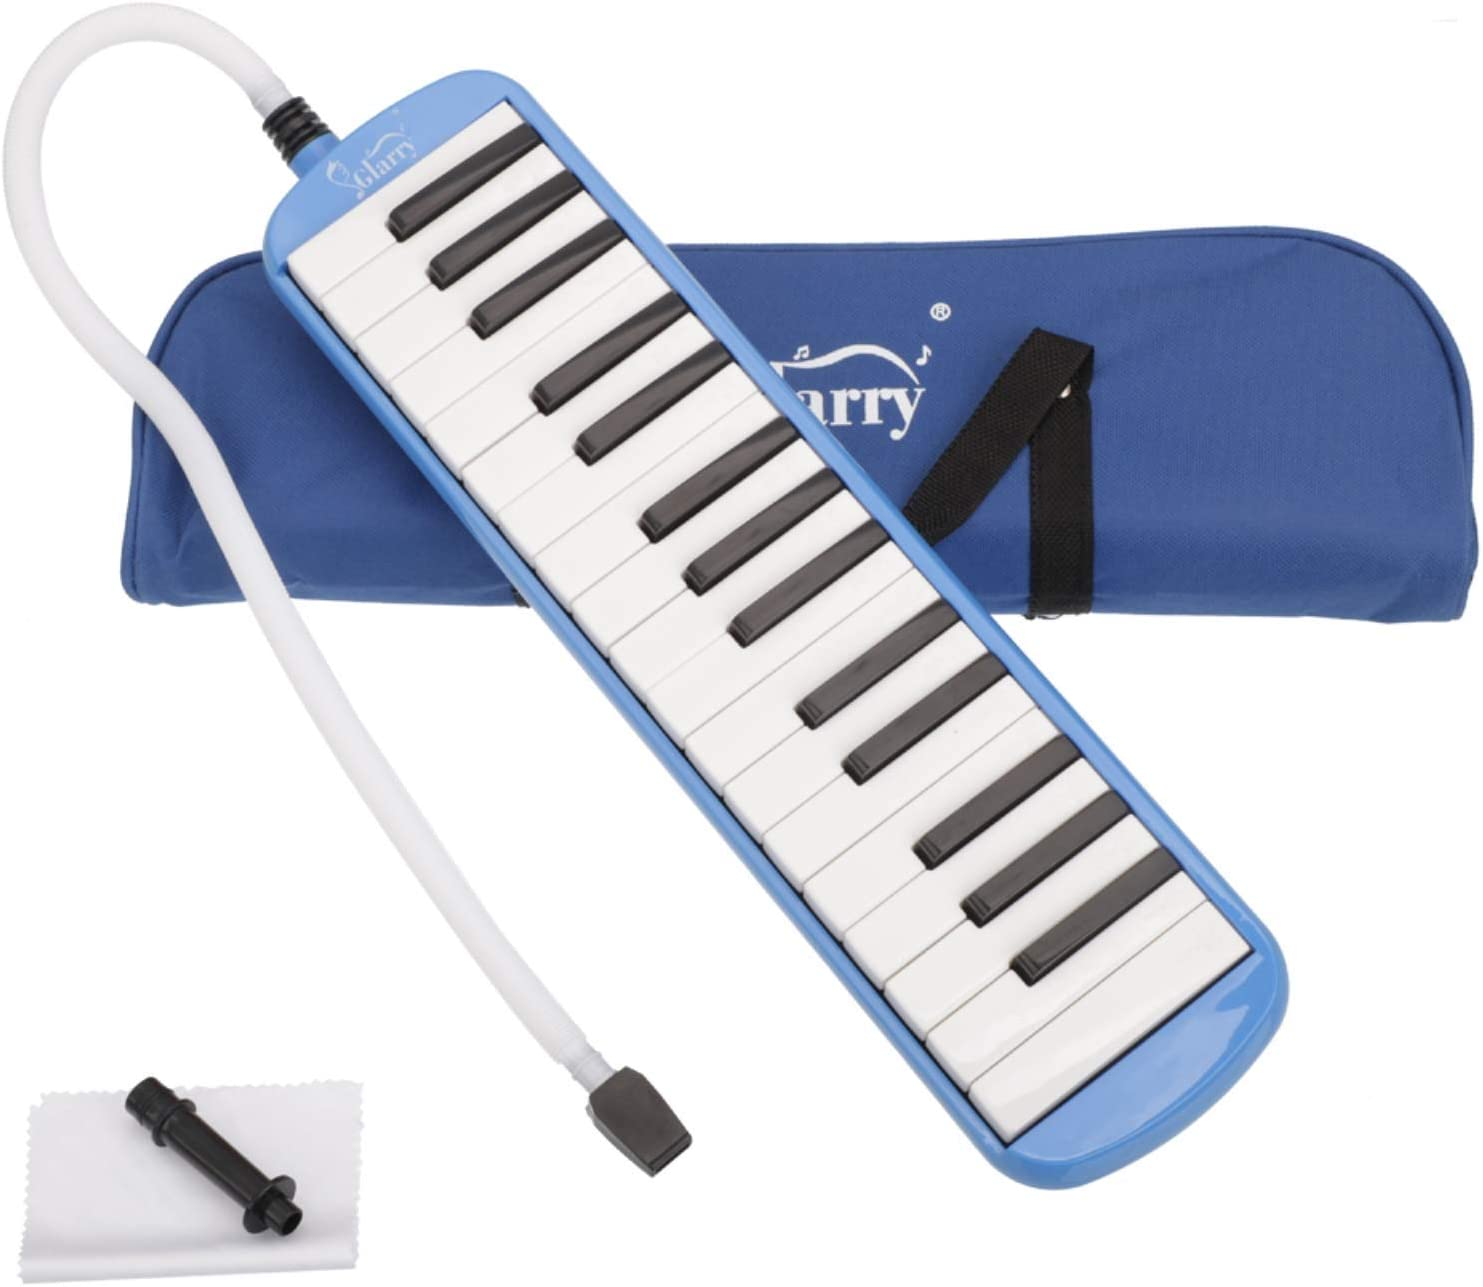 Aveland 2021 Max 40% OFF US Melodica 32-Key wi Air Instrument Popular shop is the lowest price challenge Piano Musical